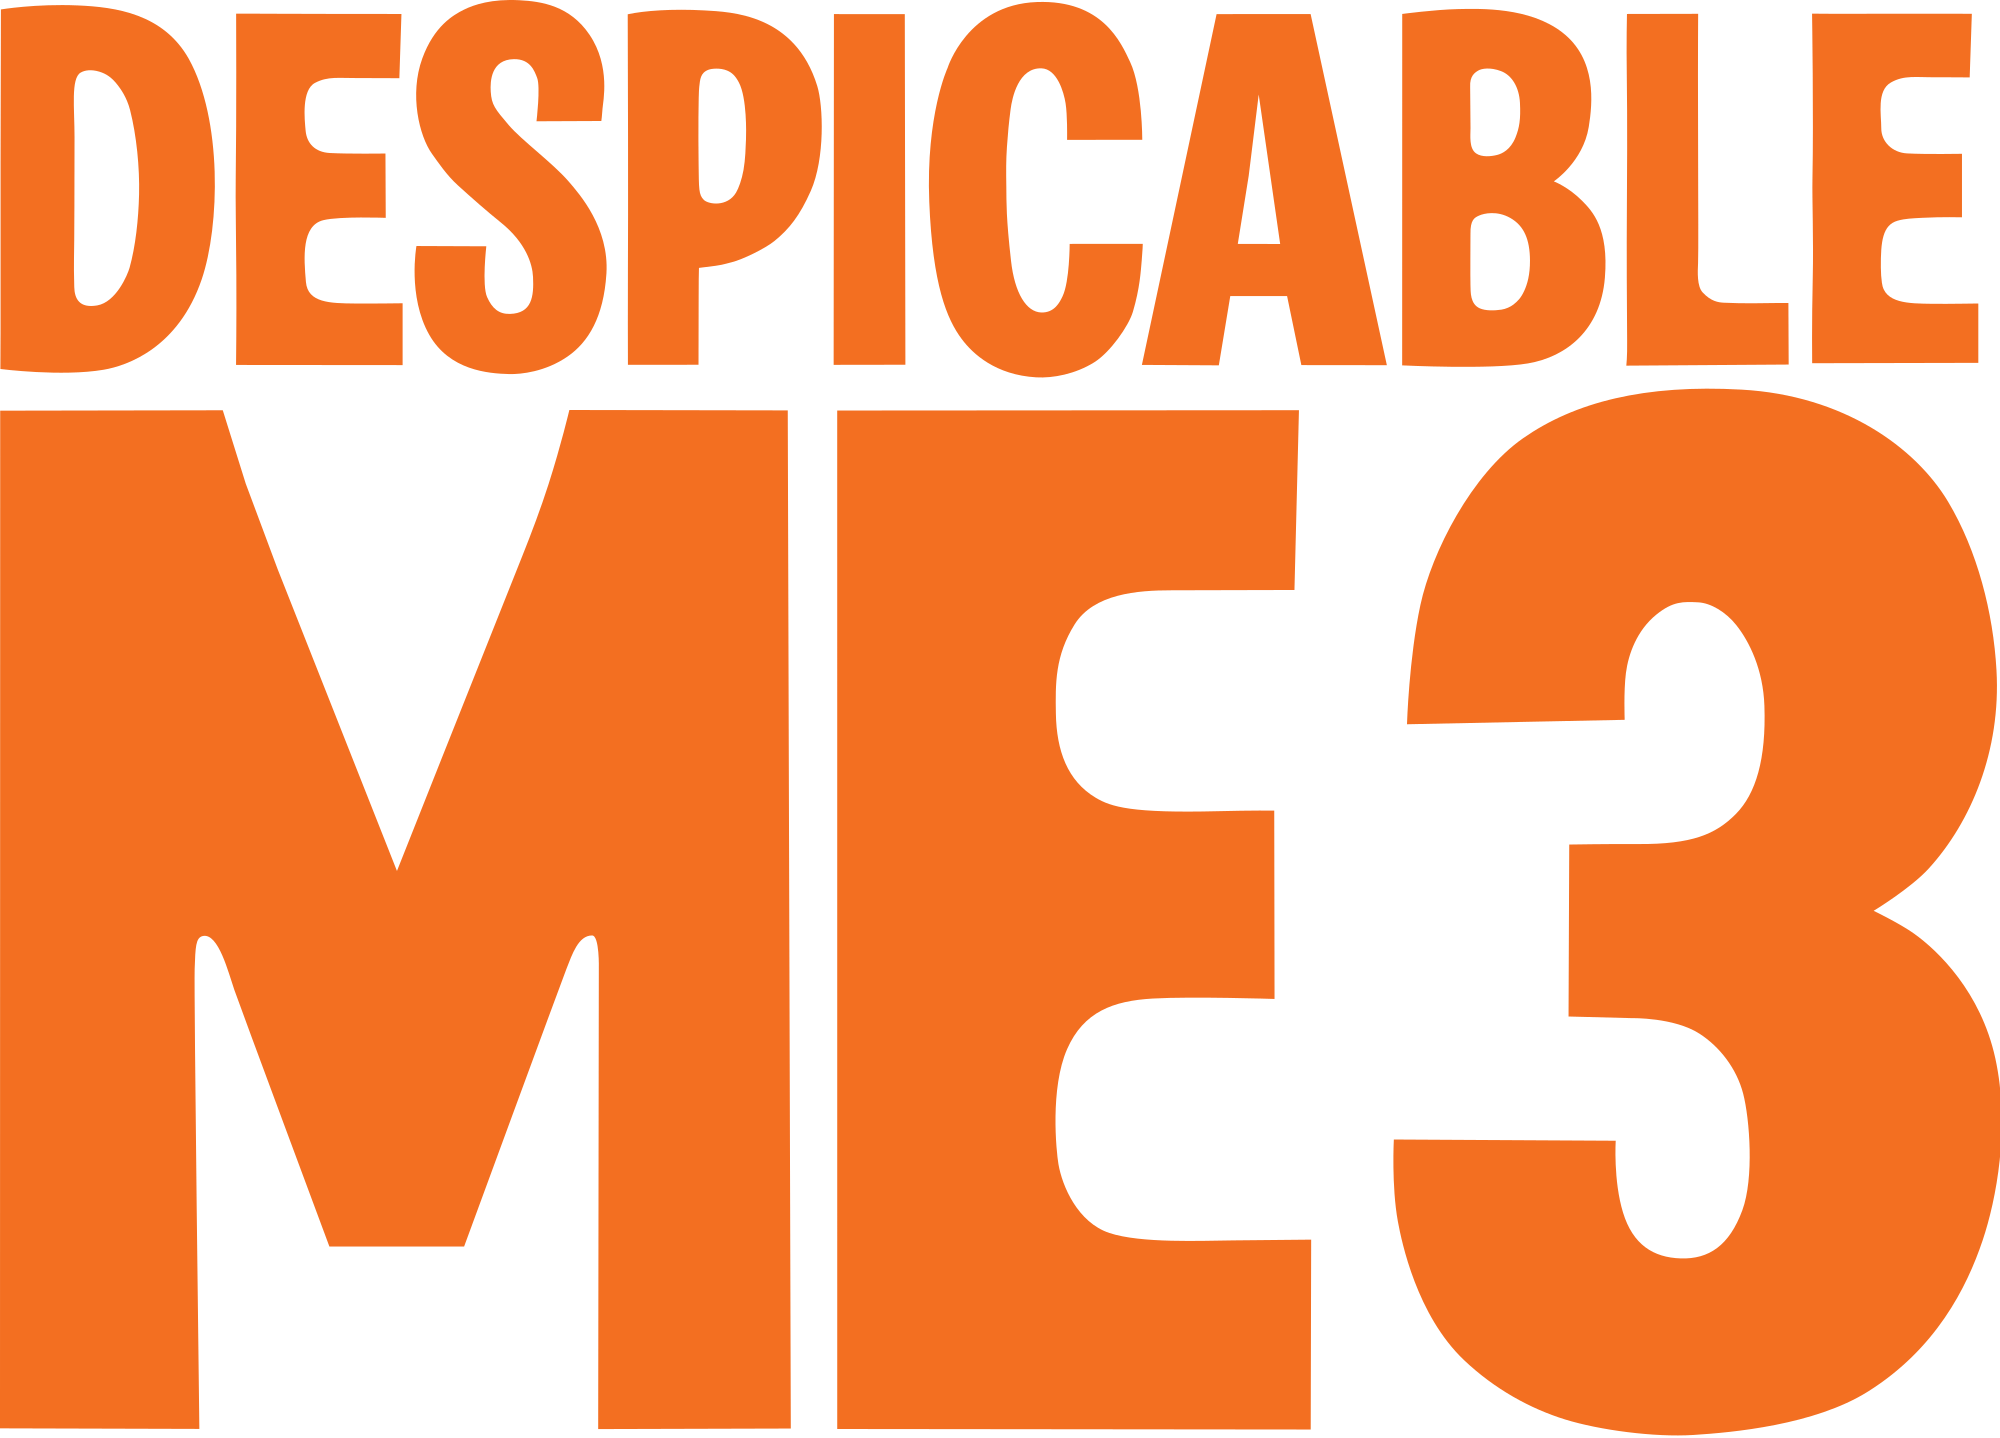 Despicable me 3 logo png. File svg wikimedia commons